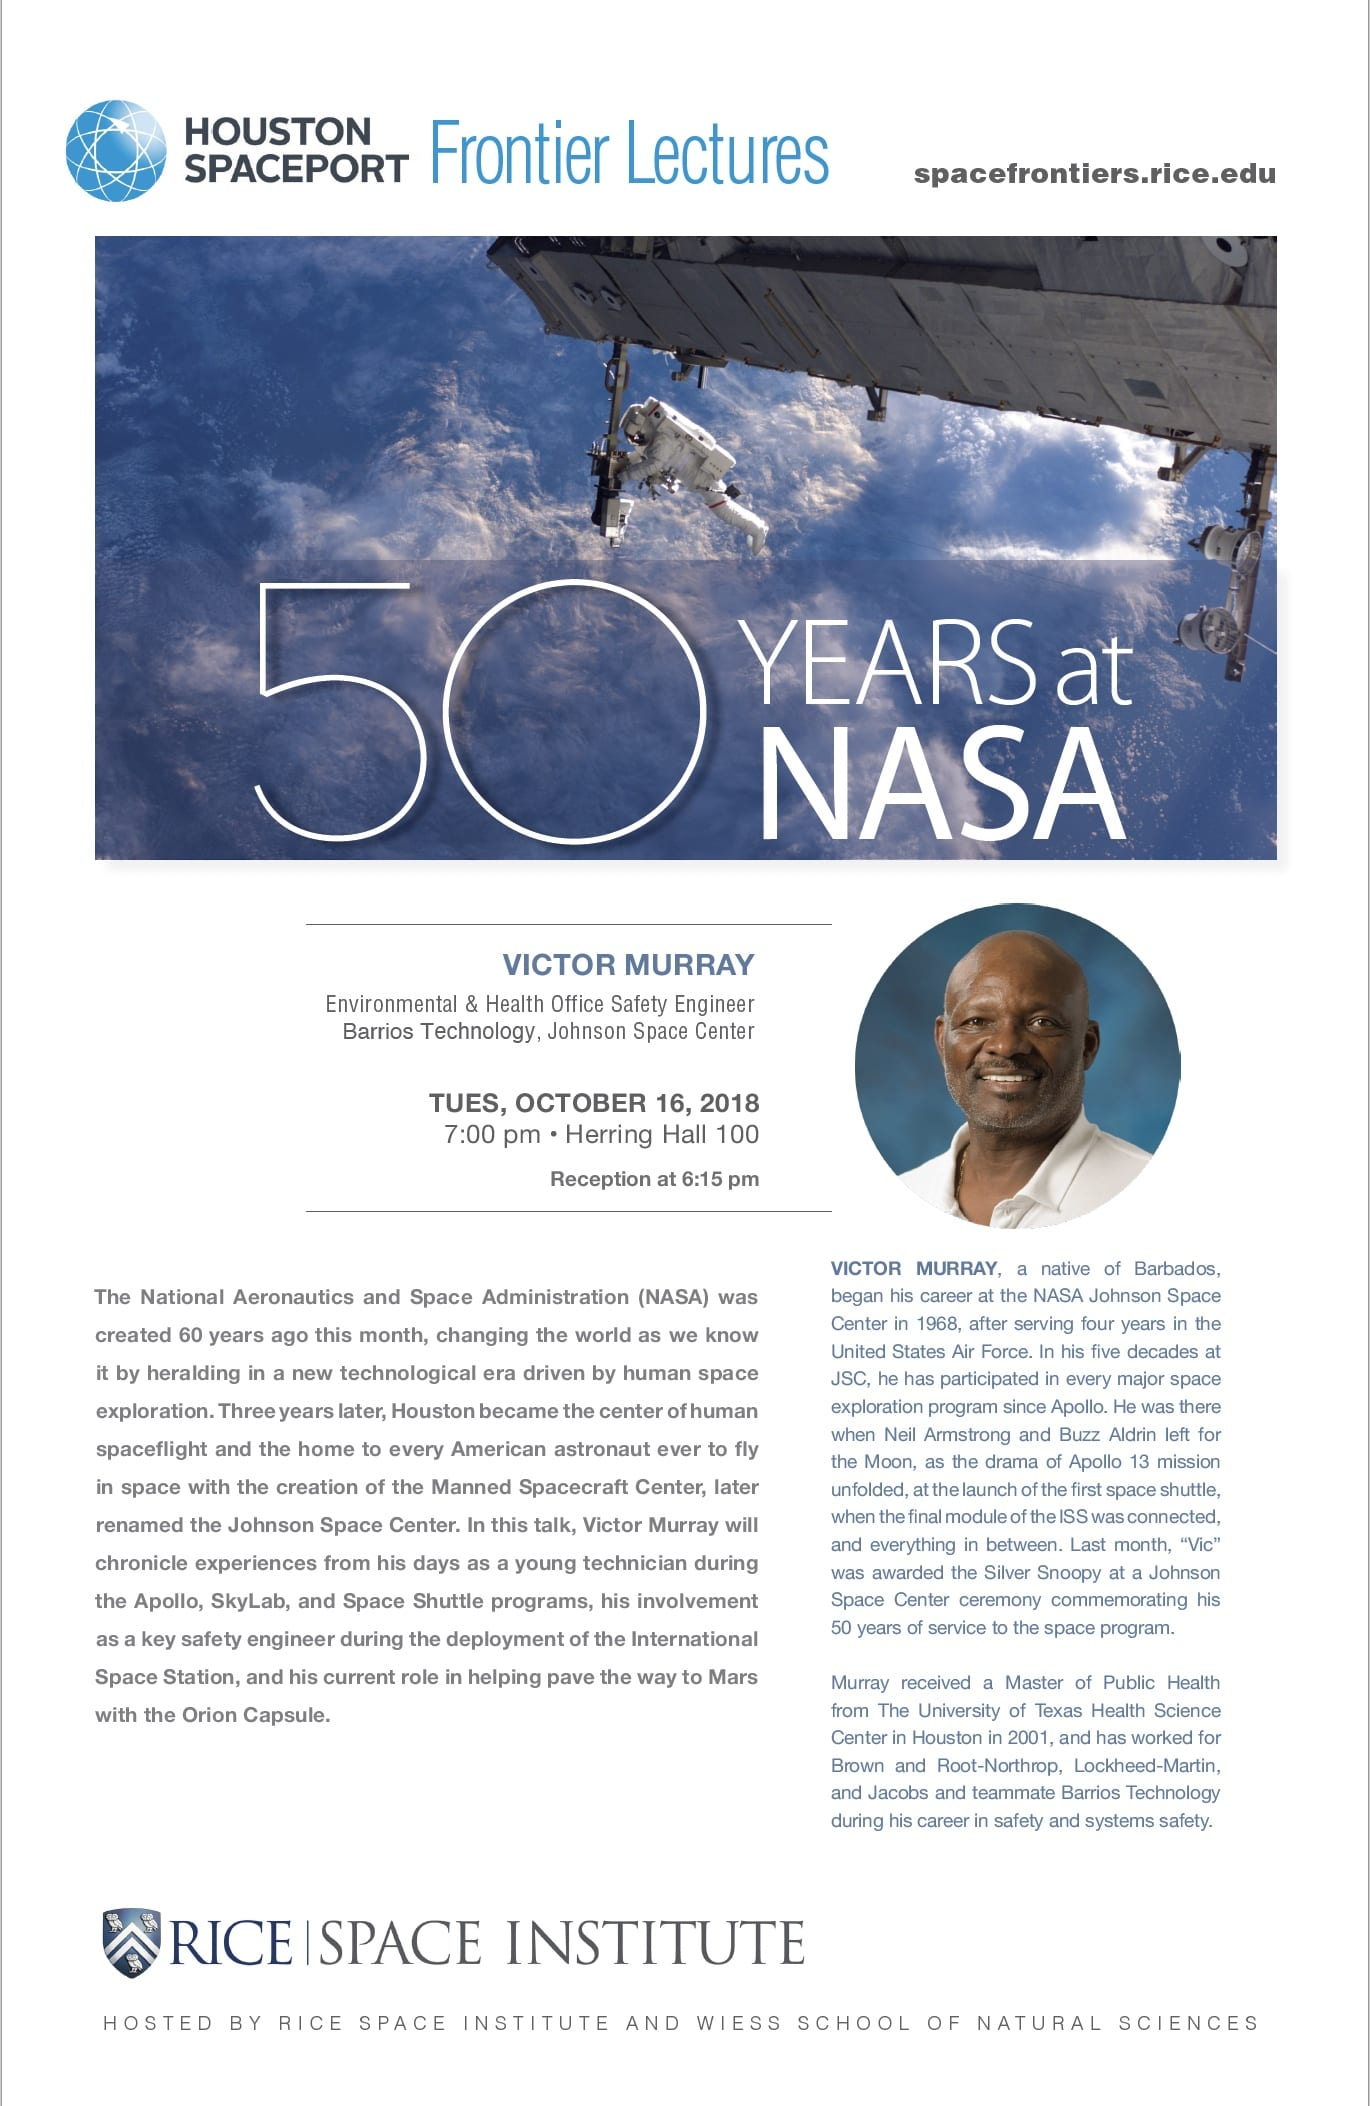 Poster of 50 Years at NASA by Victor Murray